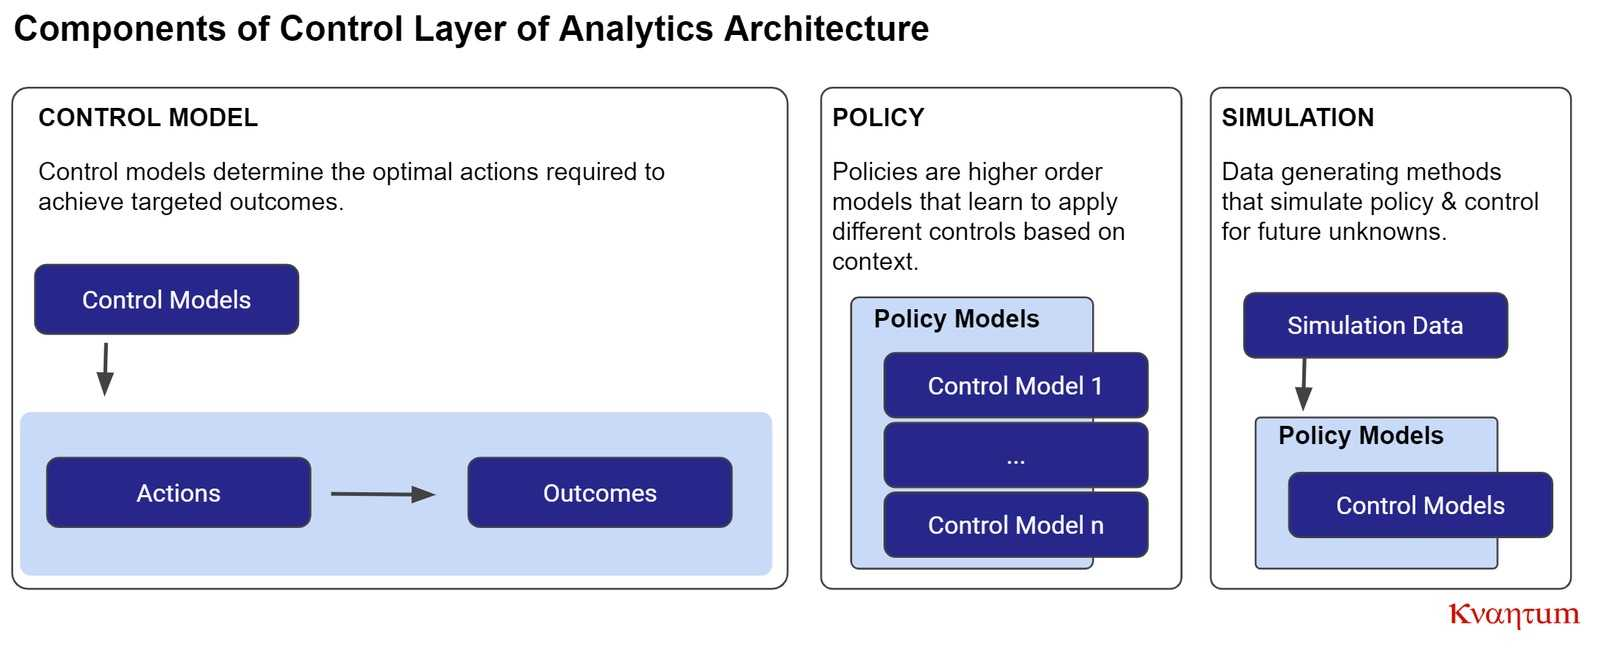 kvantum analytics architecture control layer components